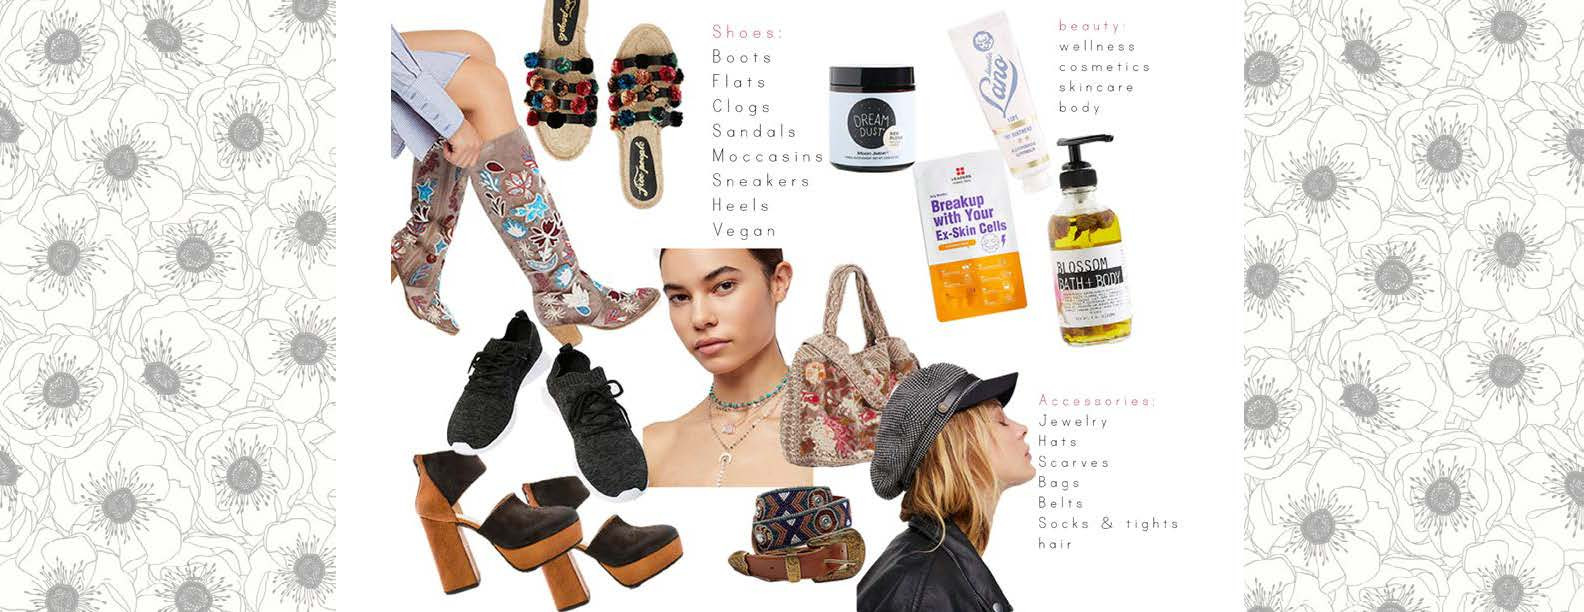 FREE PEOPLE BUYING PROJECT_Page_09.jpg